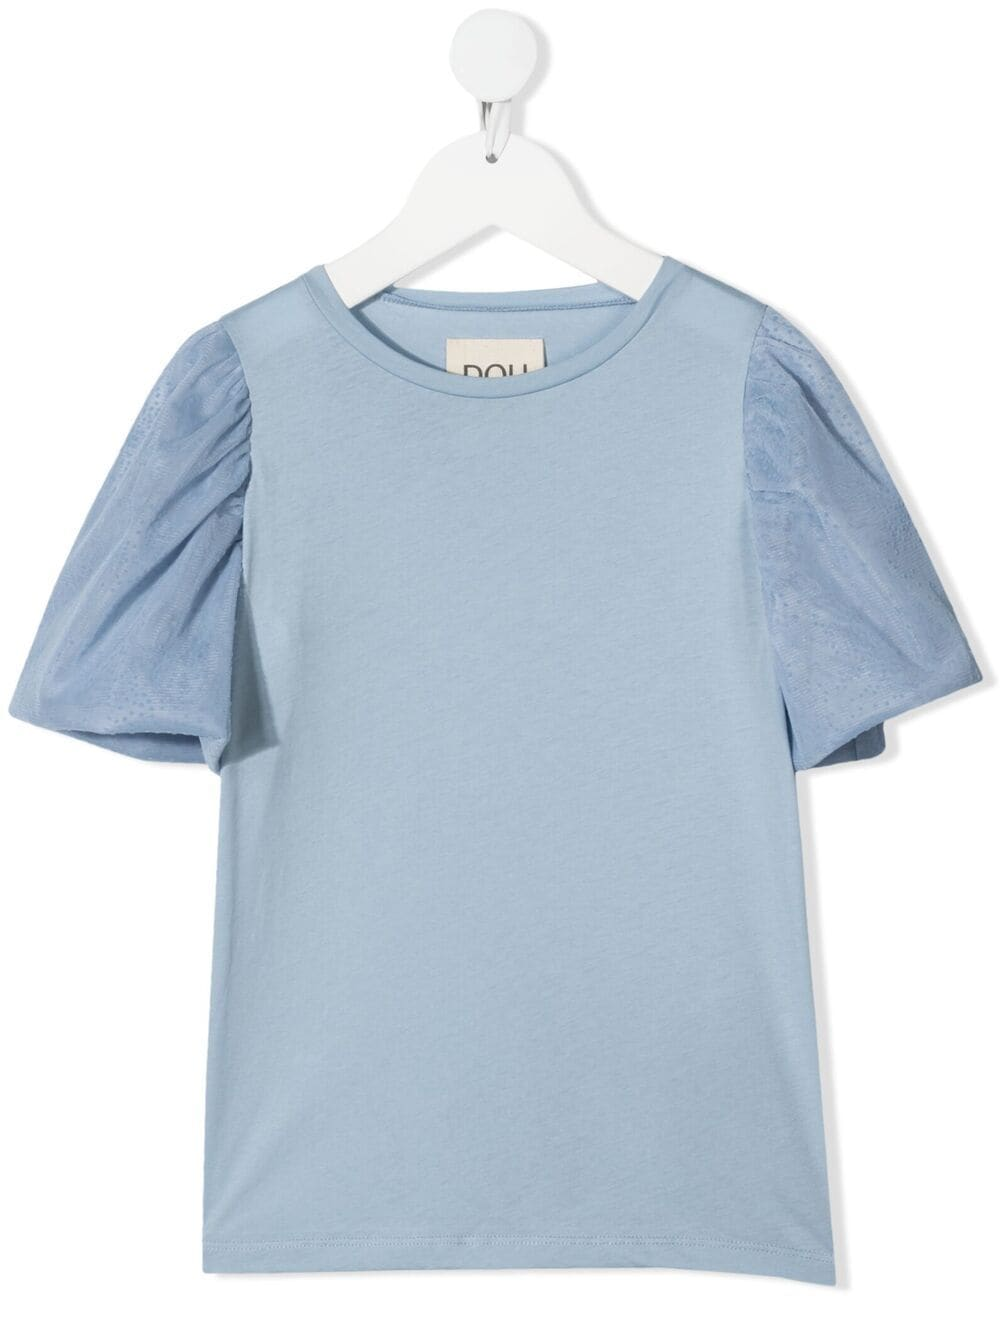 Douuod Kids tulle sleeve cotton T-shirt - Blue von Douuod Kids